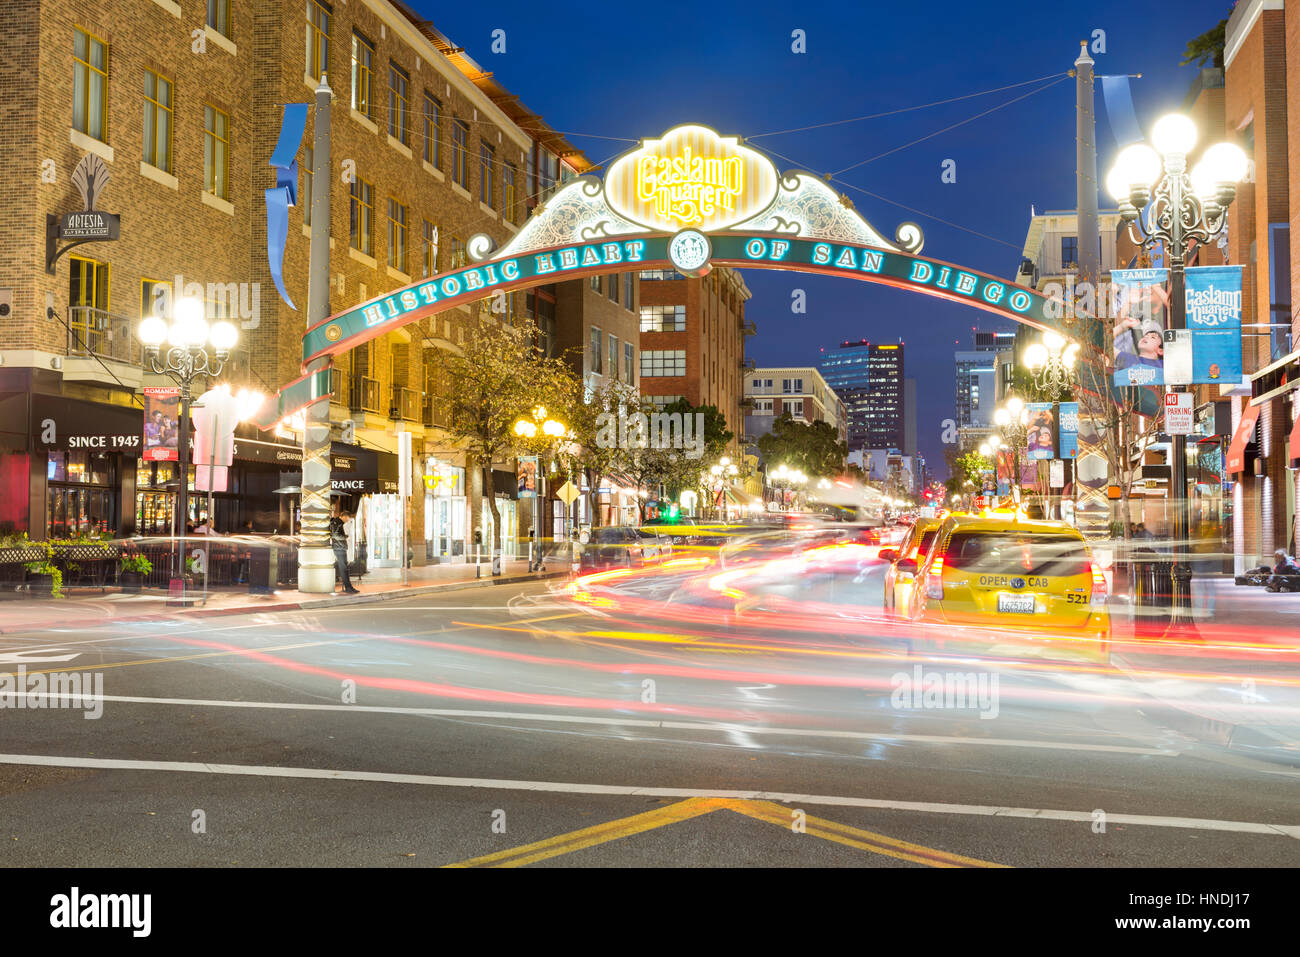 Gaslamp Quarter neon sign, looking down 5th Avenue at night. Downtown San Diego, California, USA. - Stock Image